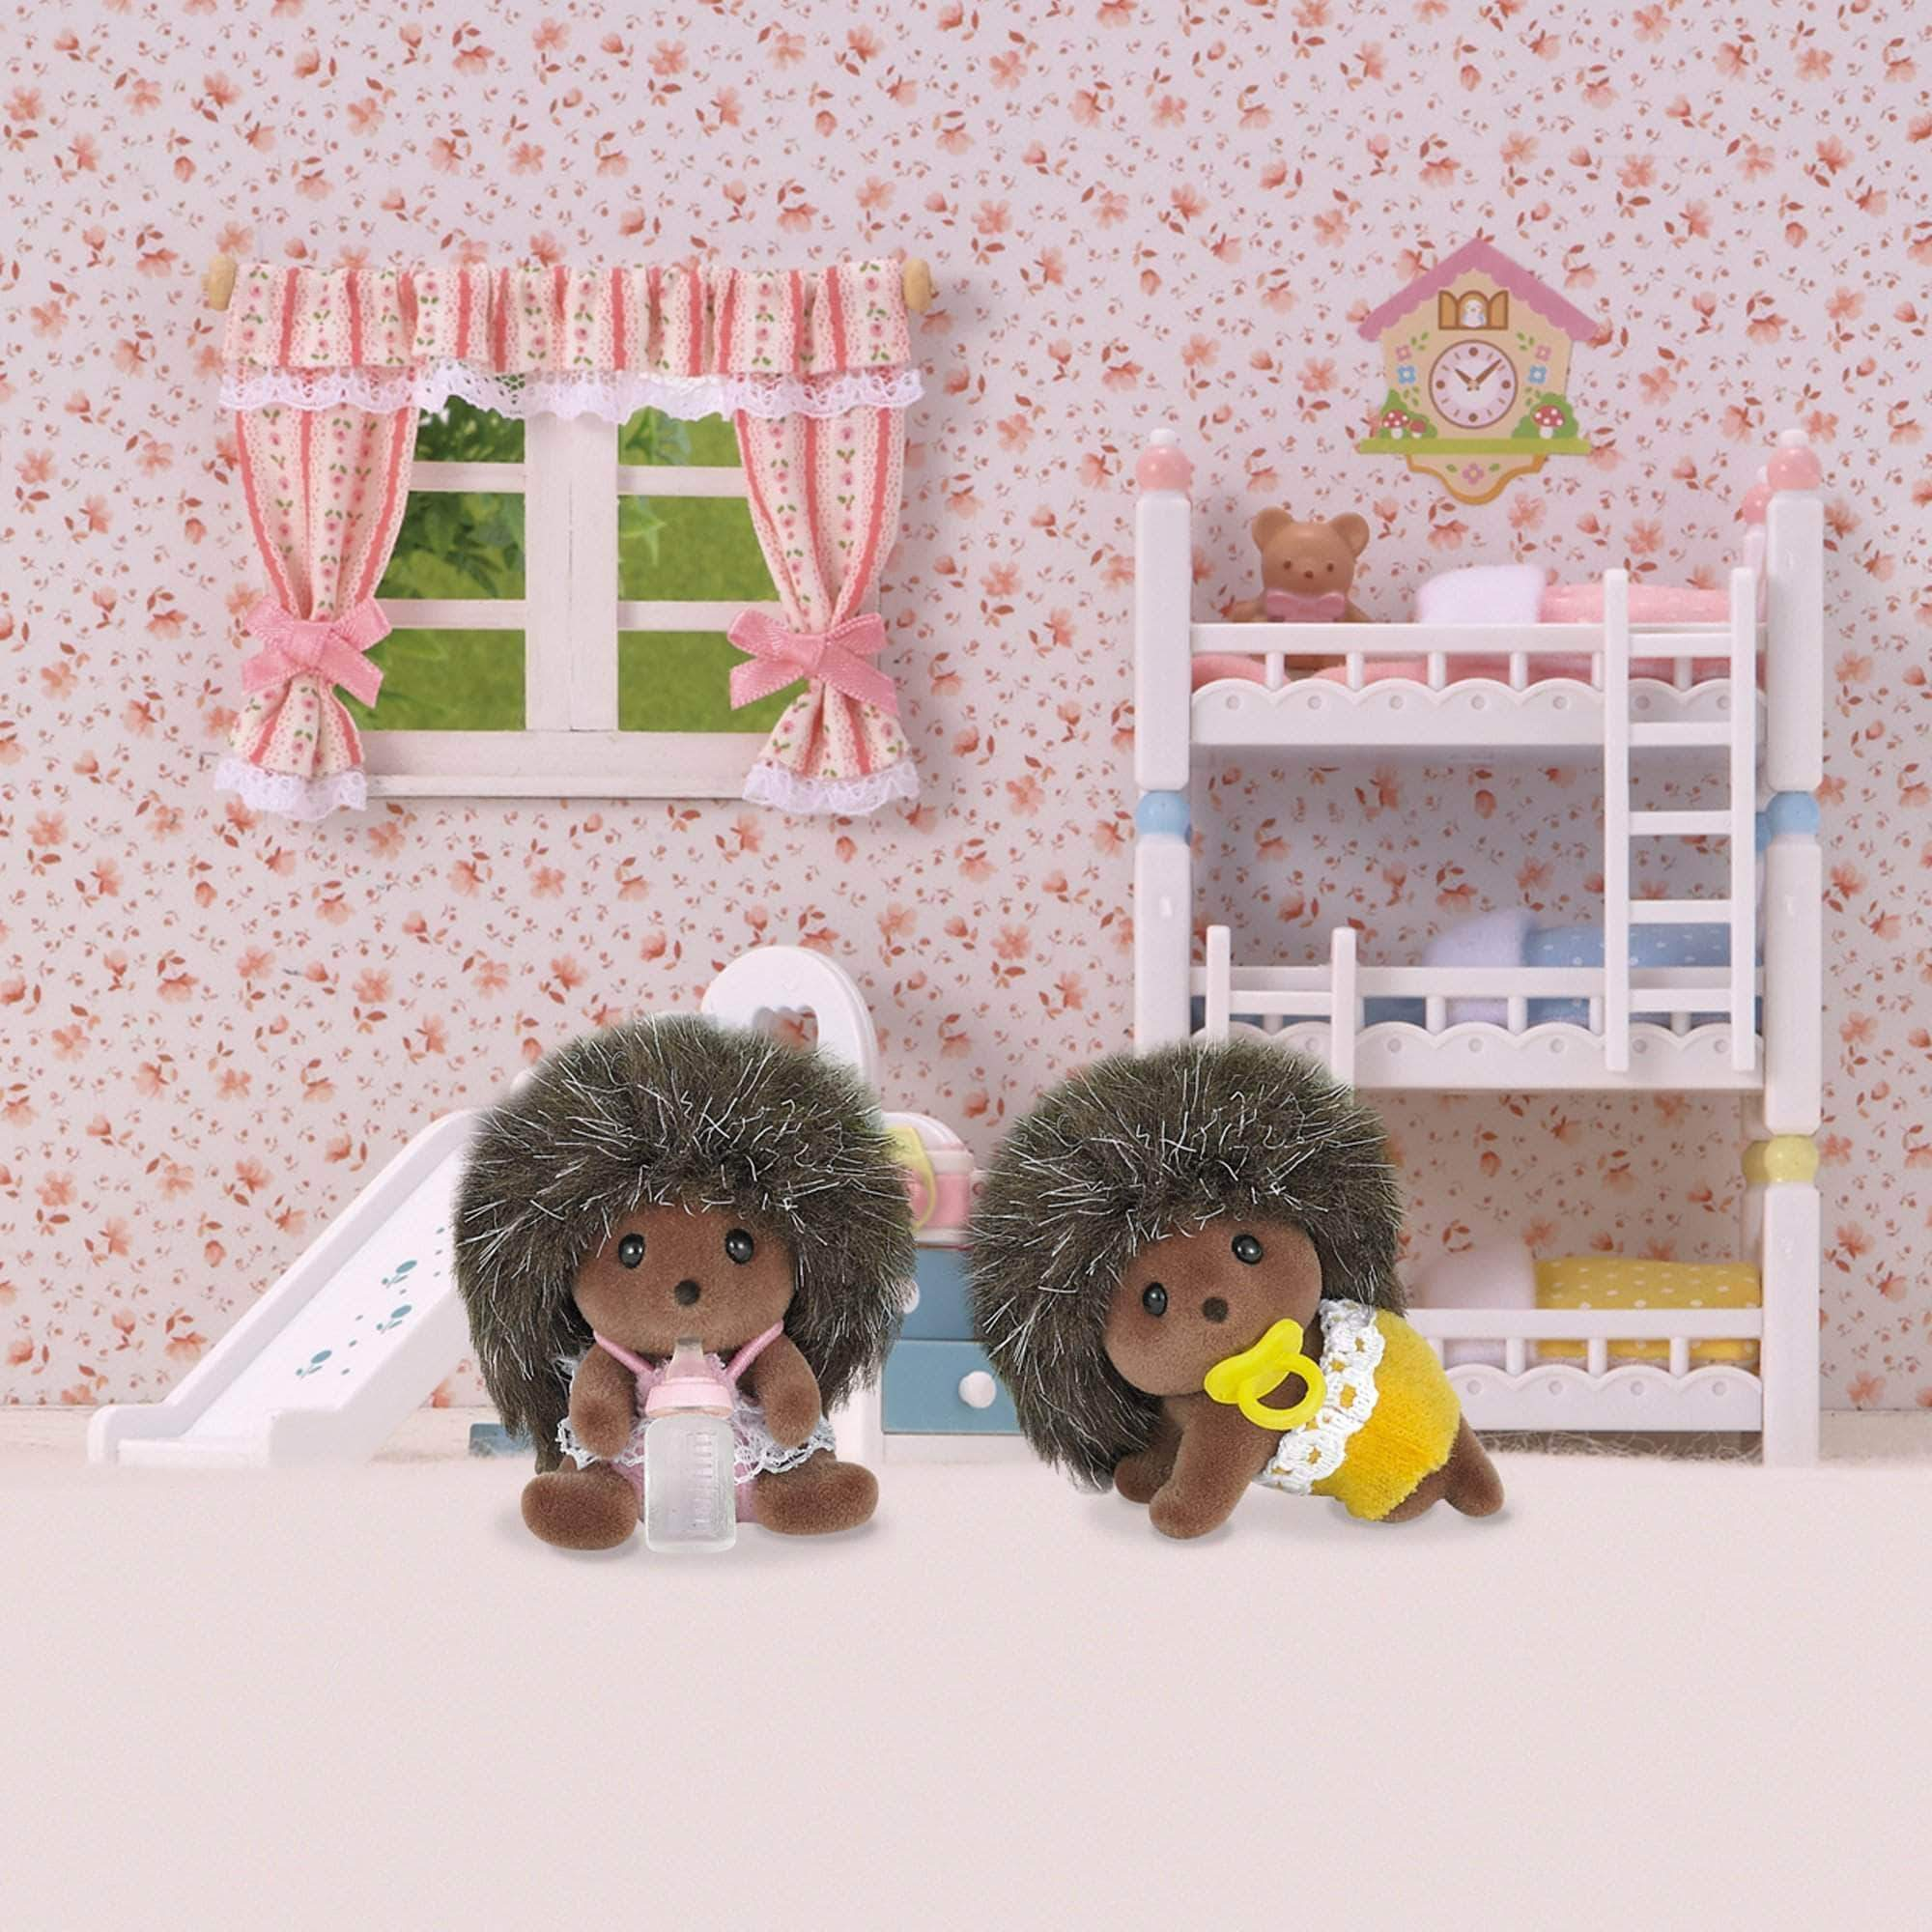 Amazon SYLVANIAN FAMILIES- Hedgehog Twins Mini Muñecas Y Accesorios, Multicolor (Epoch para Imaginar 5218)